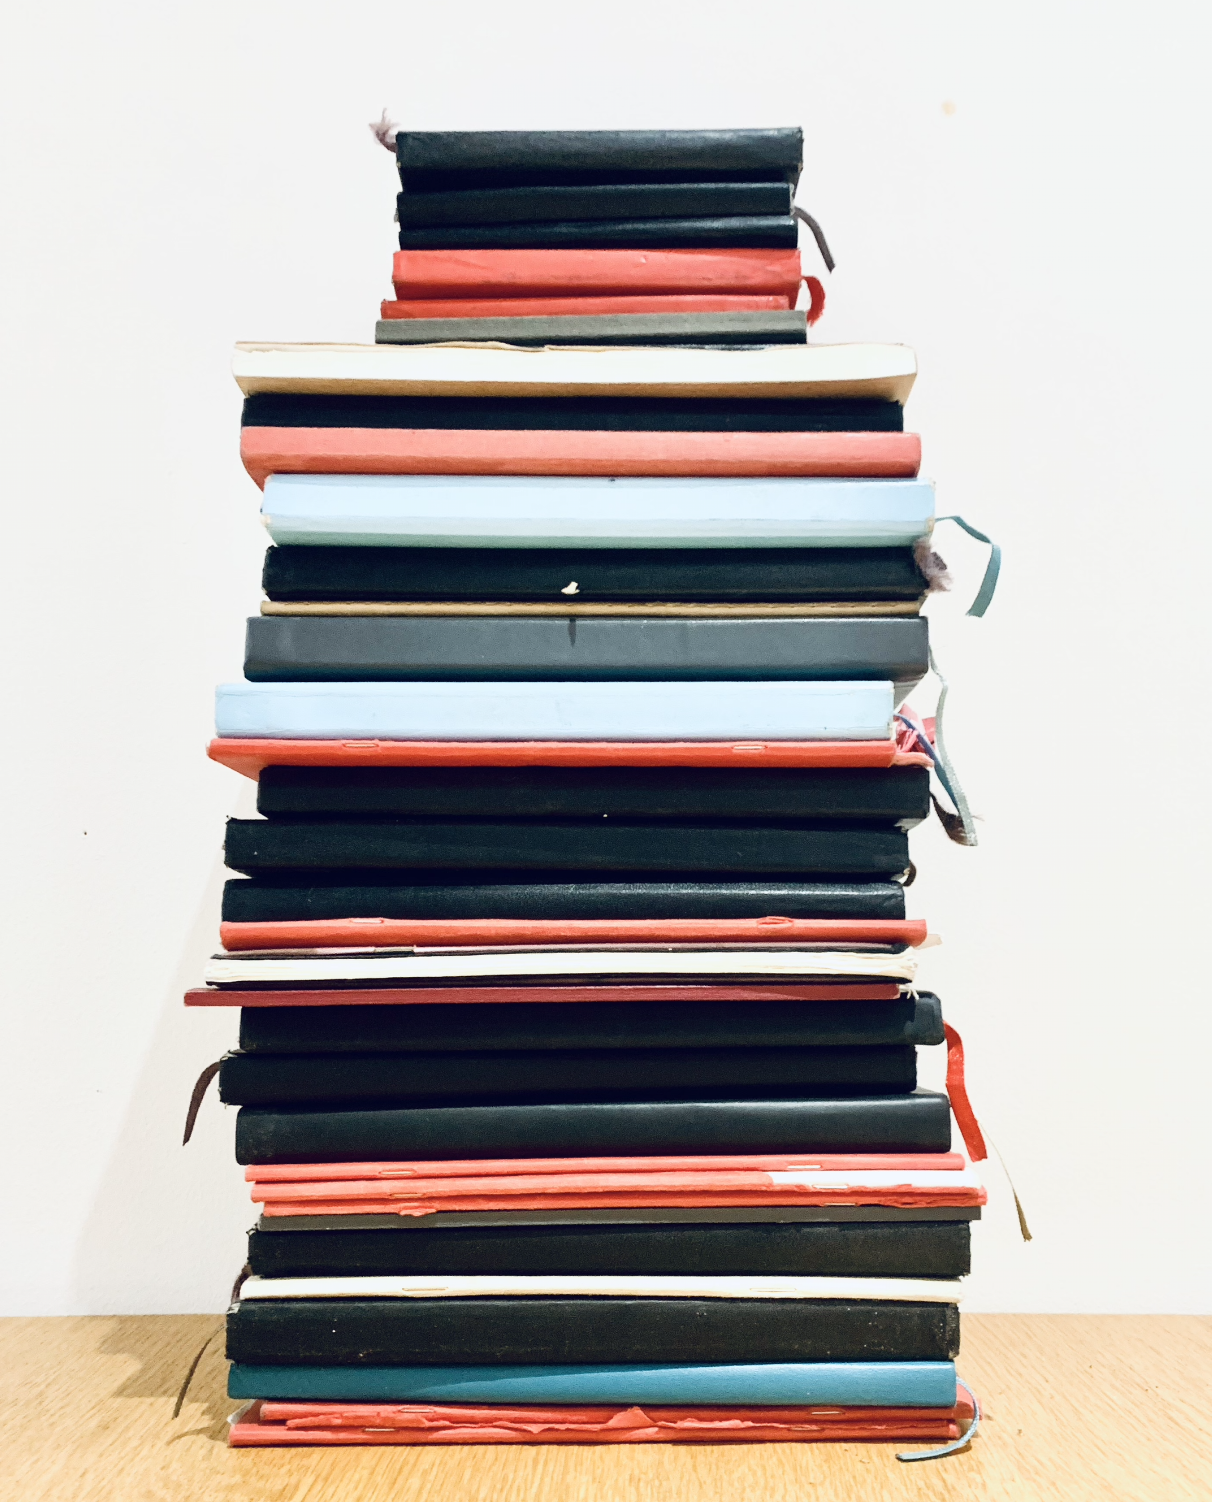 A stack of sketch books piled up in red, black and sky blue